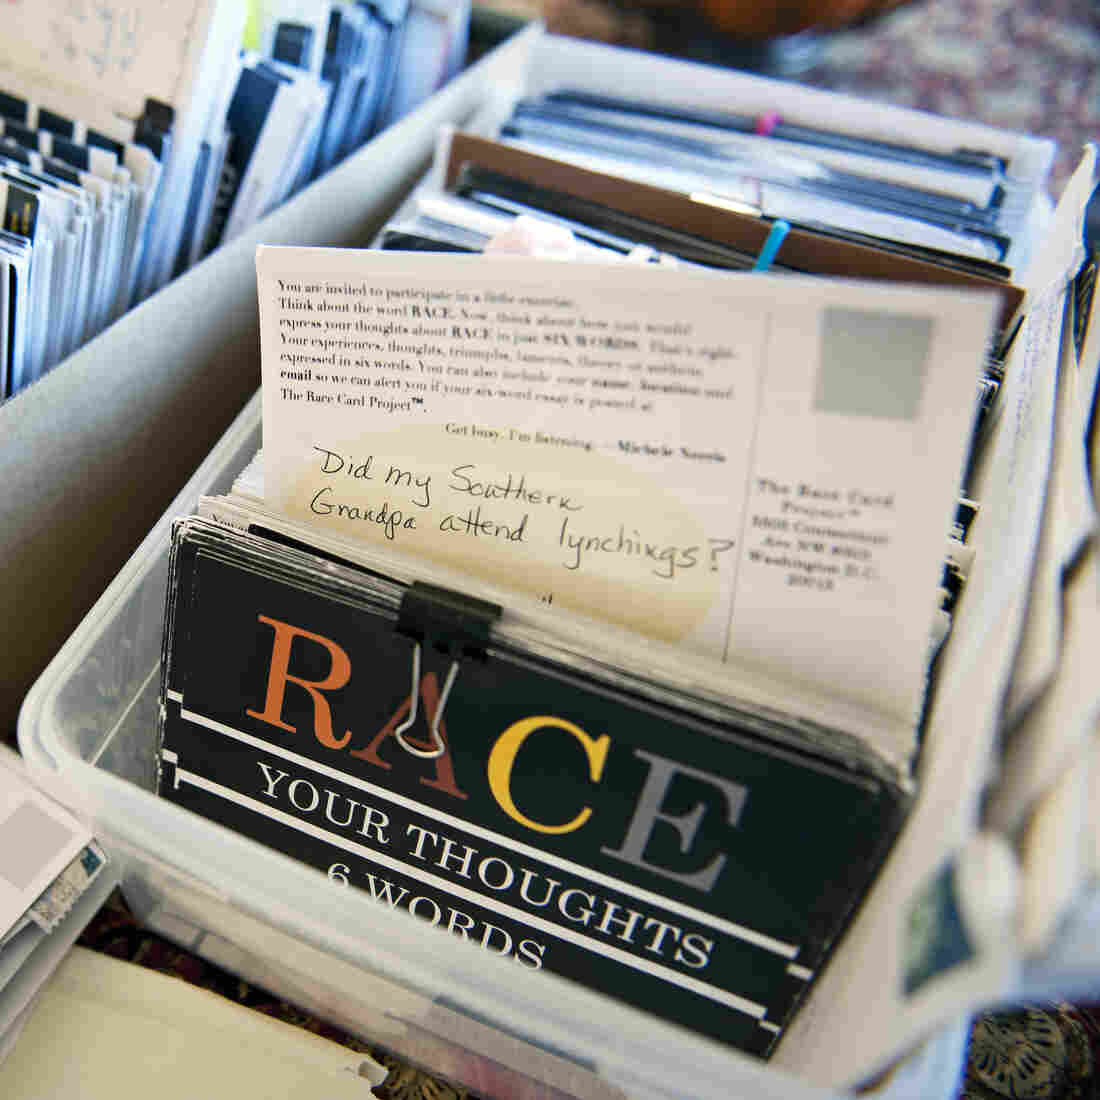 NPR's Michelle Norris displays some of the Race Cards sent to her as part of her Race Card Project, at her home in Washington, on Nov. 29, 2012. Norris was on a book tour two years ago, and started passing out postcards a dozen or so at a time, asking people to share six words that express their thoughts about race. Now she has received more than 12,000 cards.